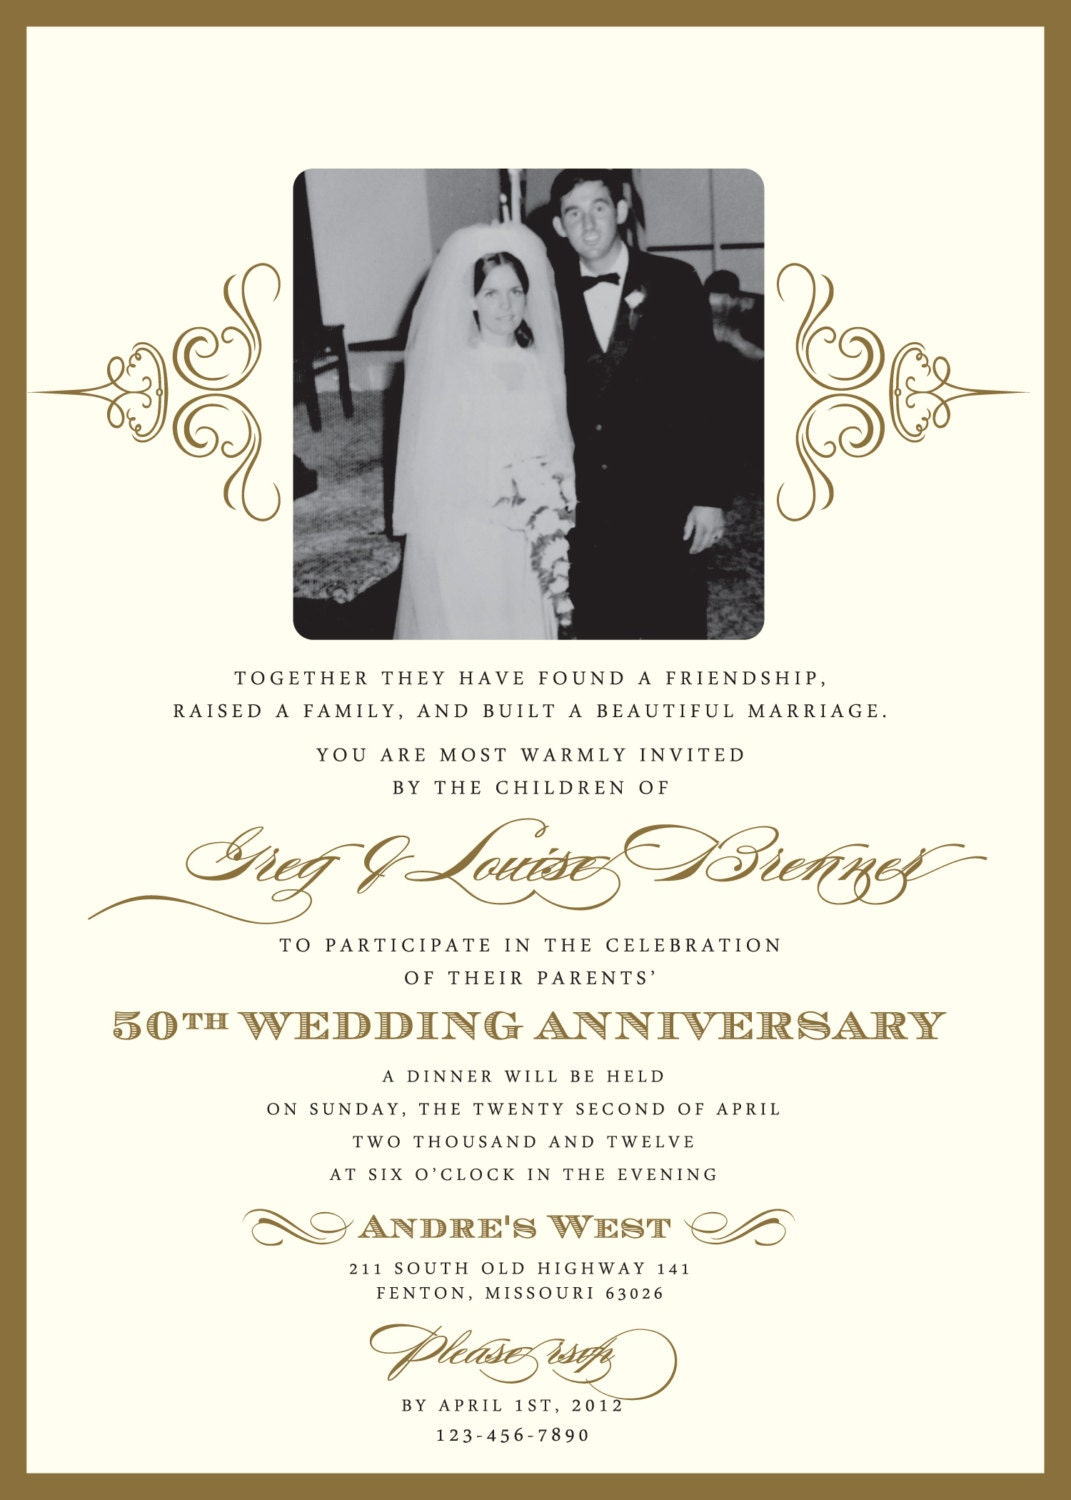 Golden 50th anniversary party invitation - Wedding anniversary invitations ...